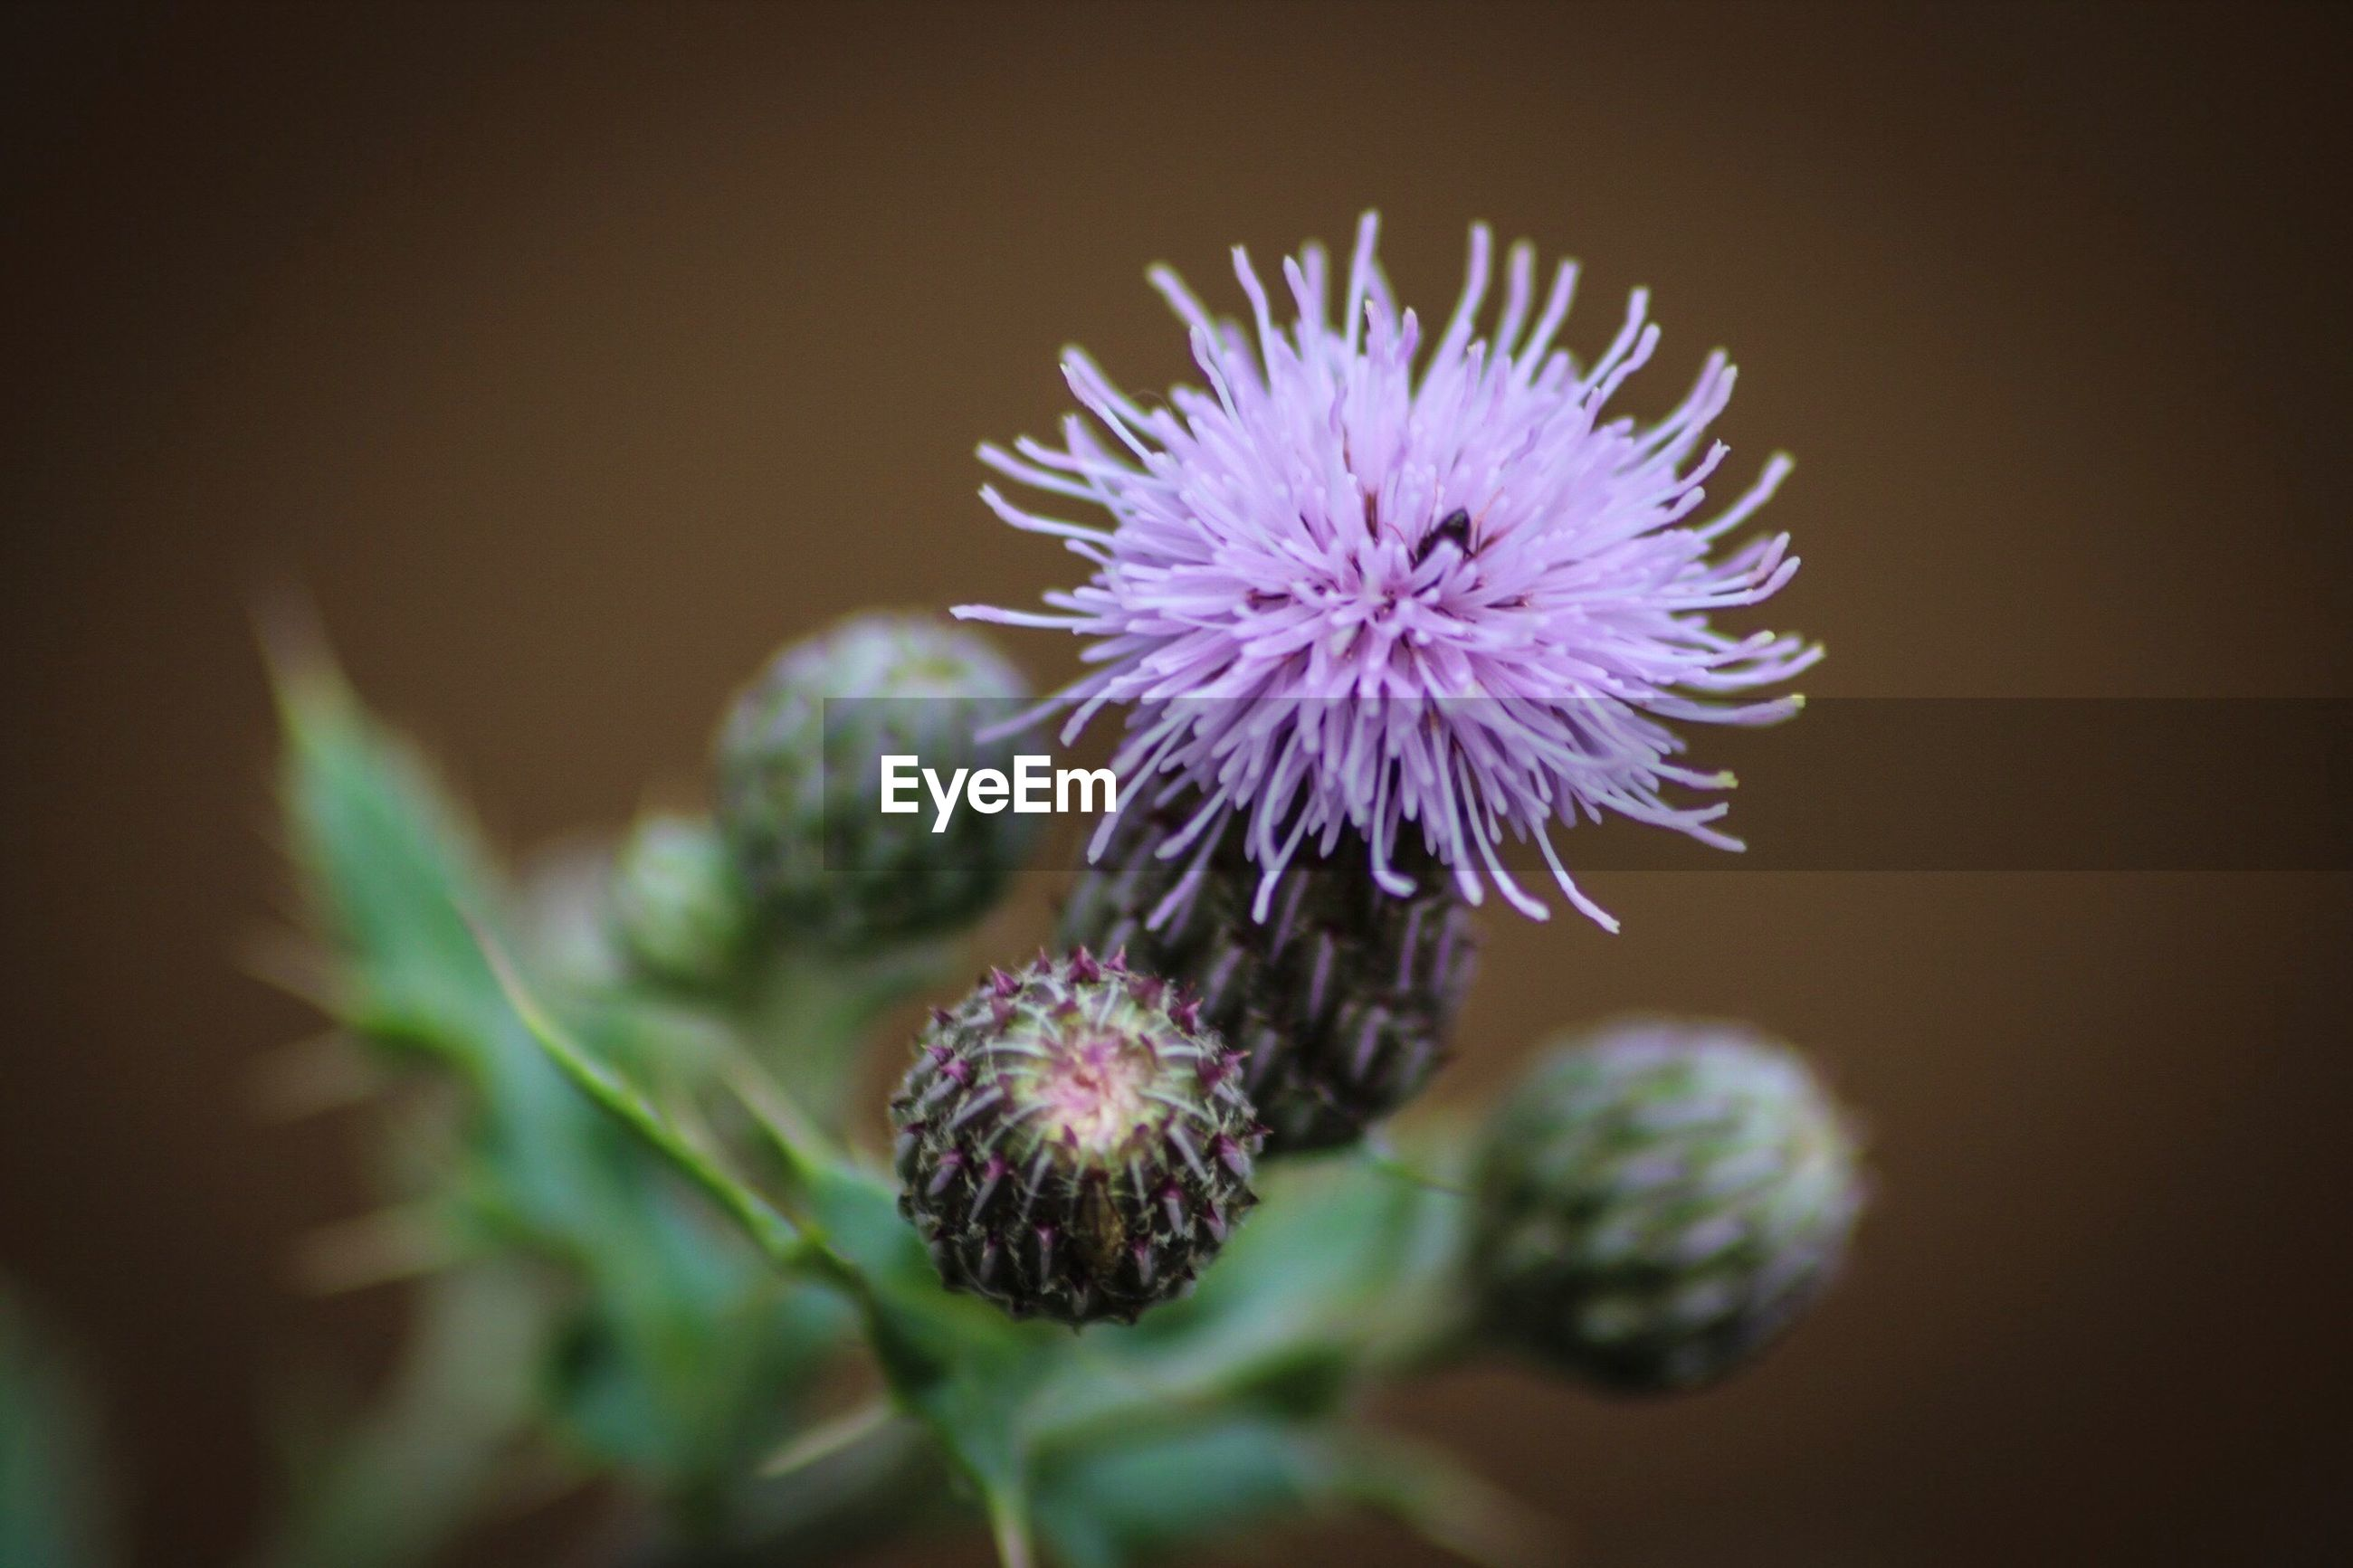 CLOSE-UP OF THISTLE FLOWERS